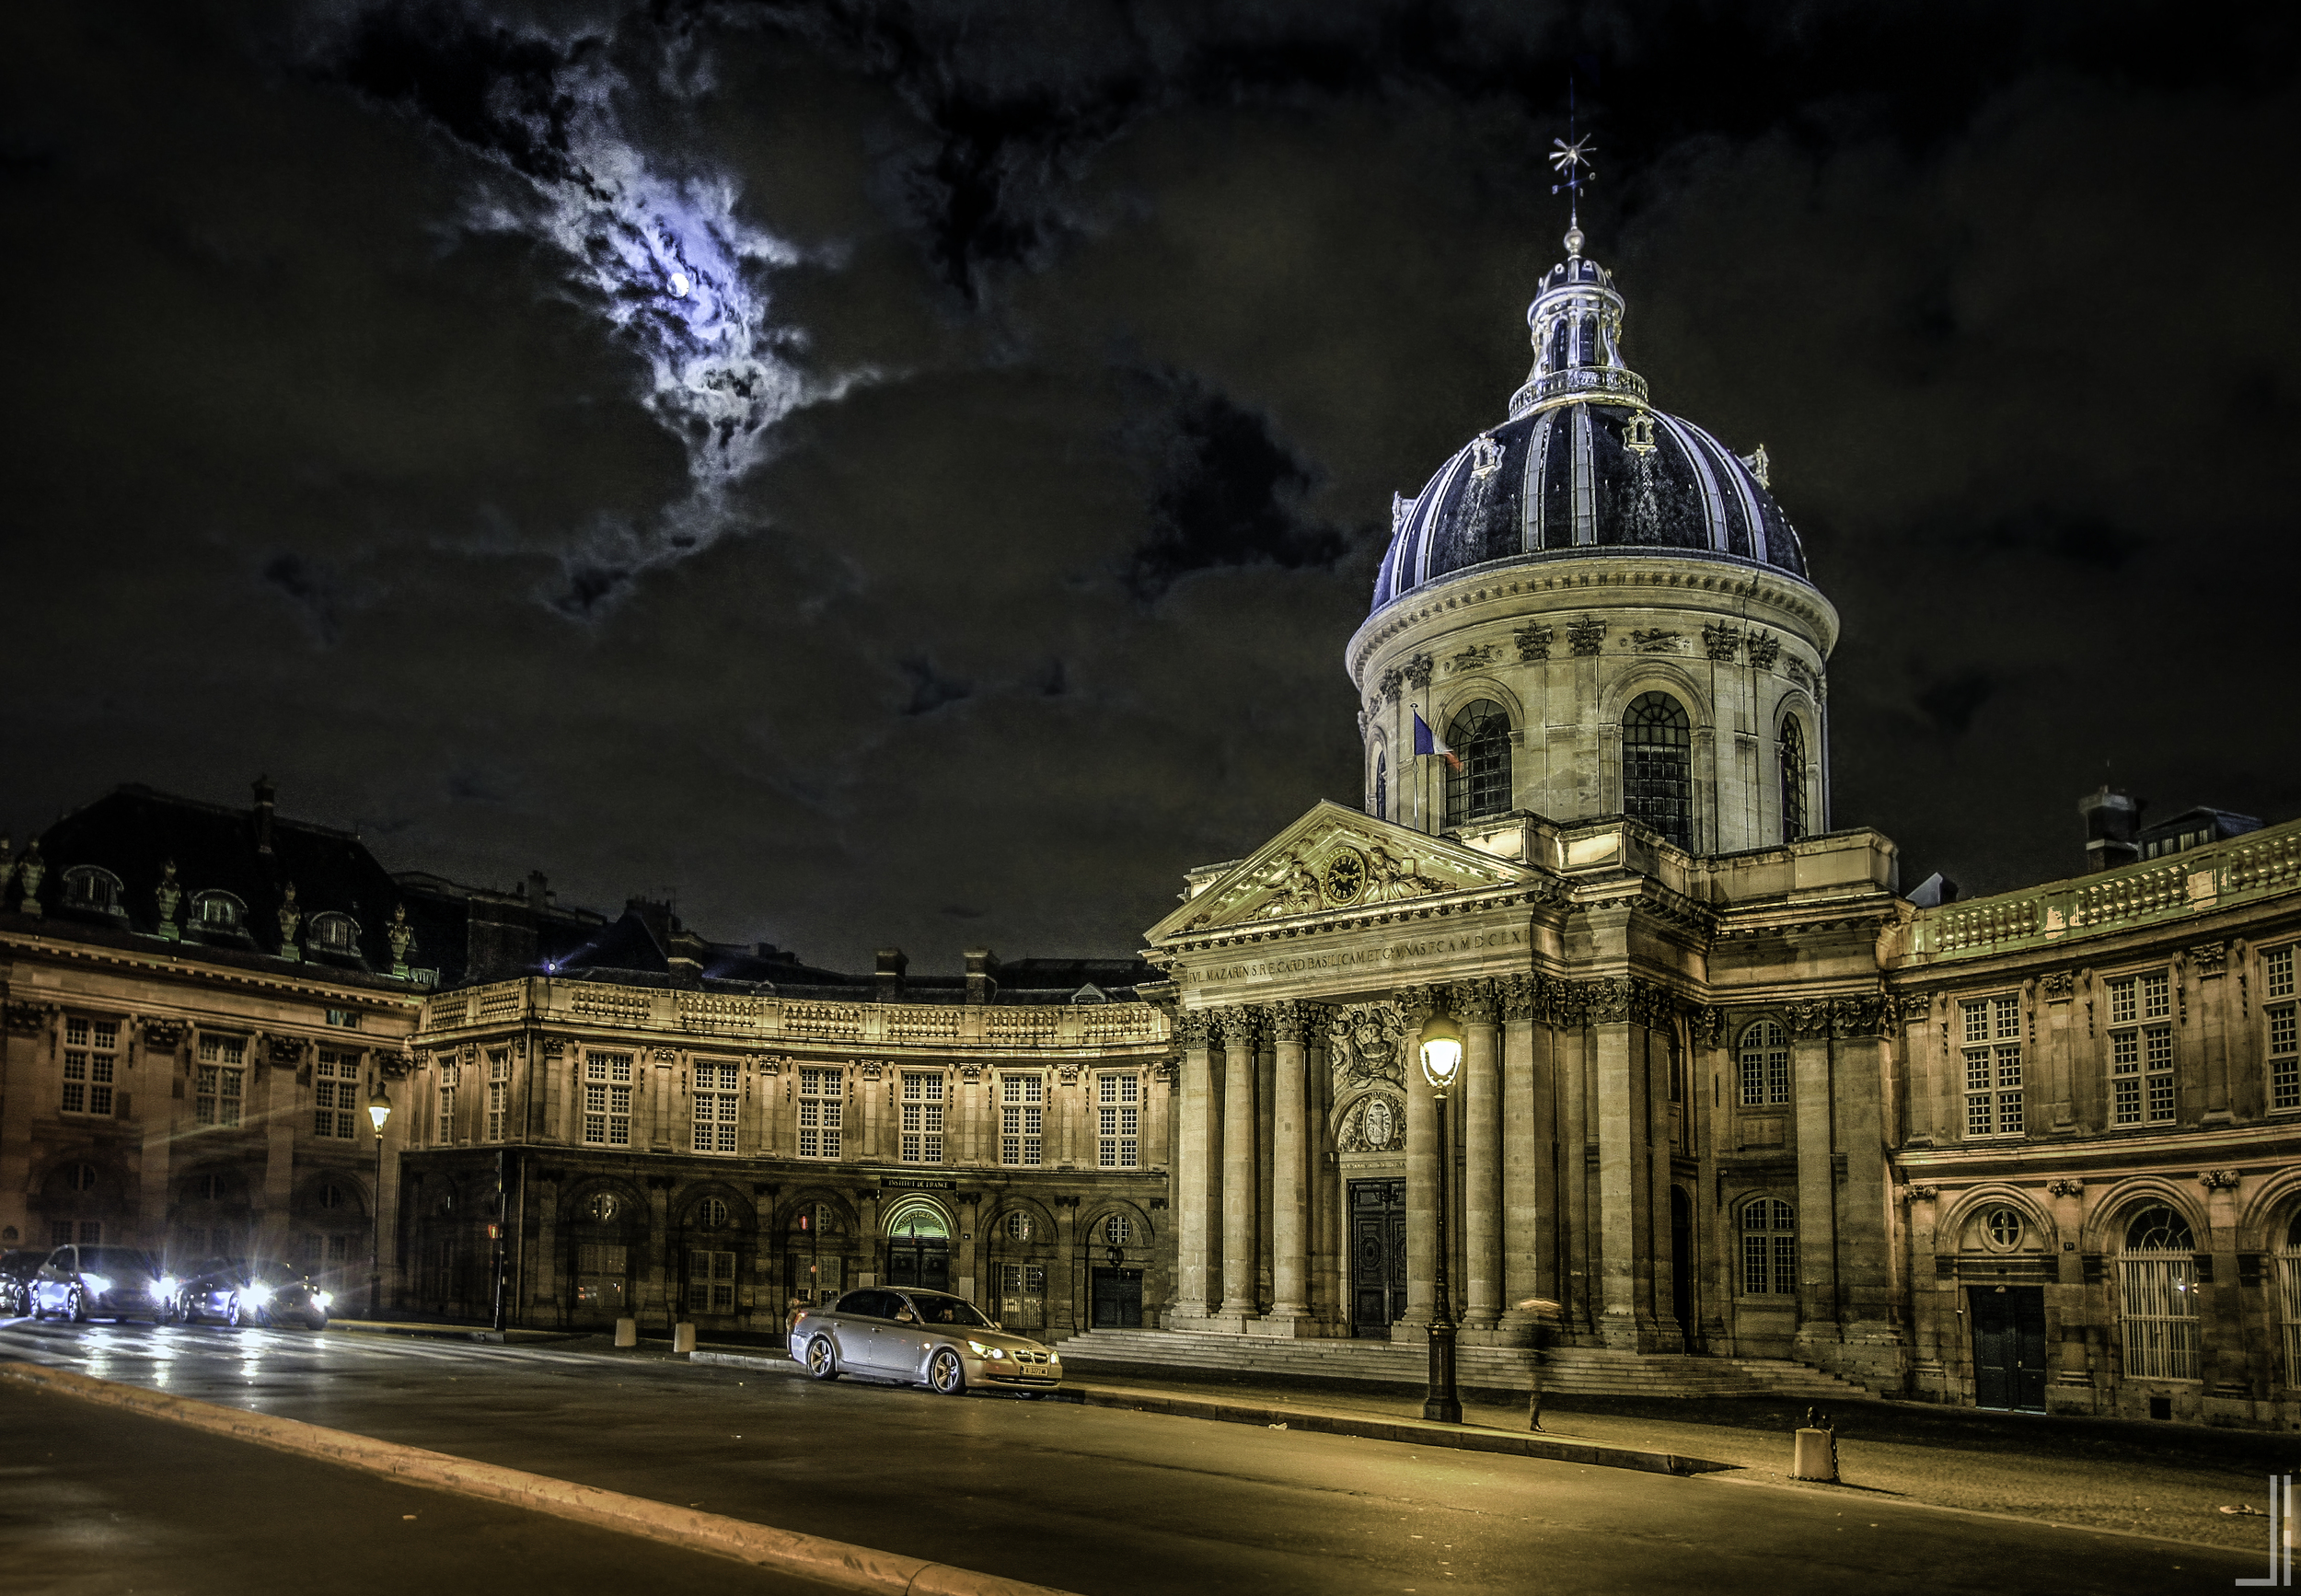 Night Paris - Joris Bax - jbax.jpg